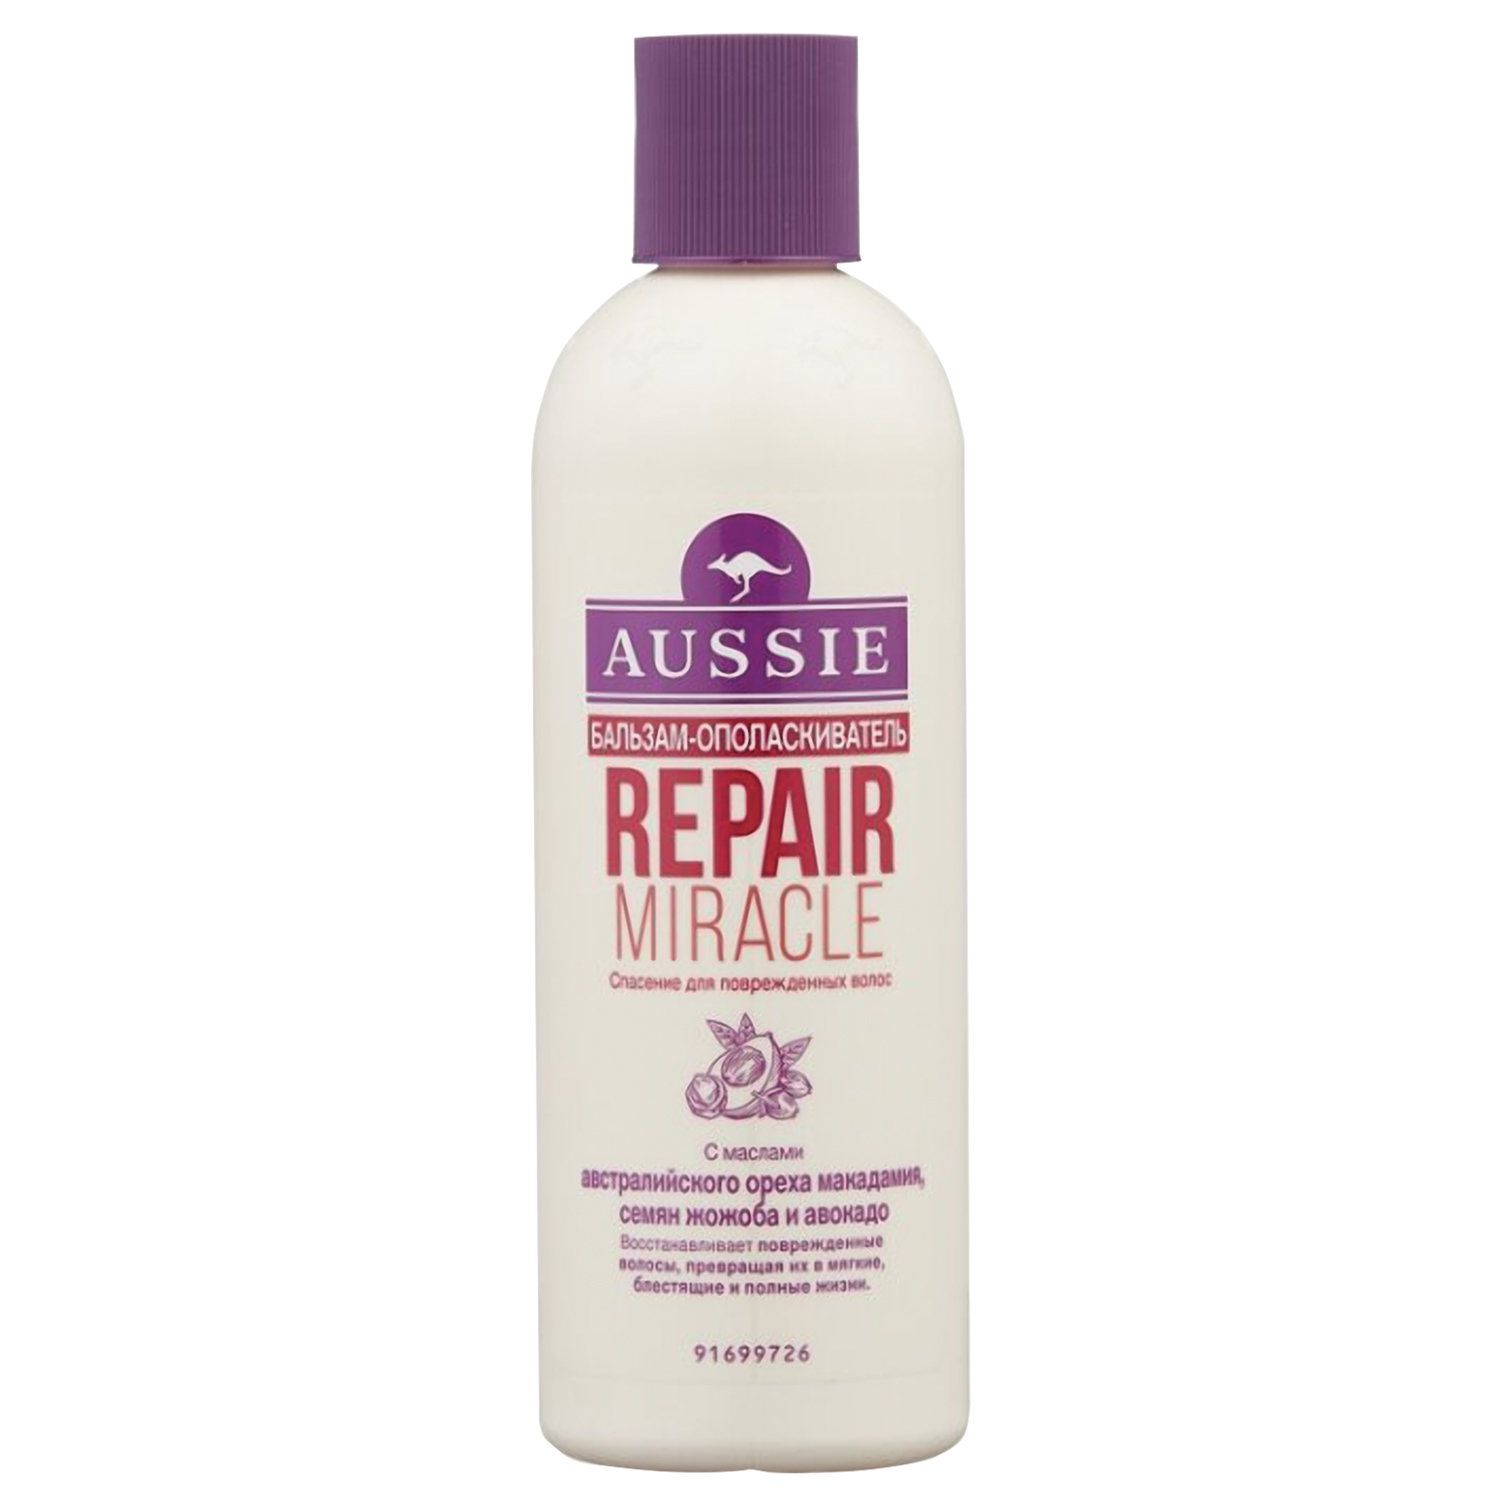 AUSSIE / Repair Miracle Conditioning Conditioner for Dry Hair, 250 ml